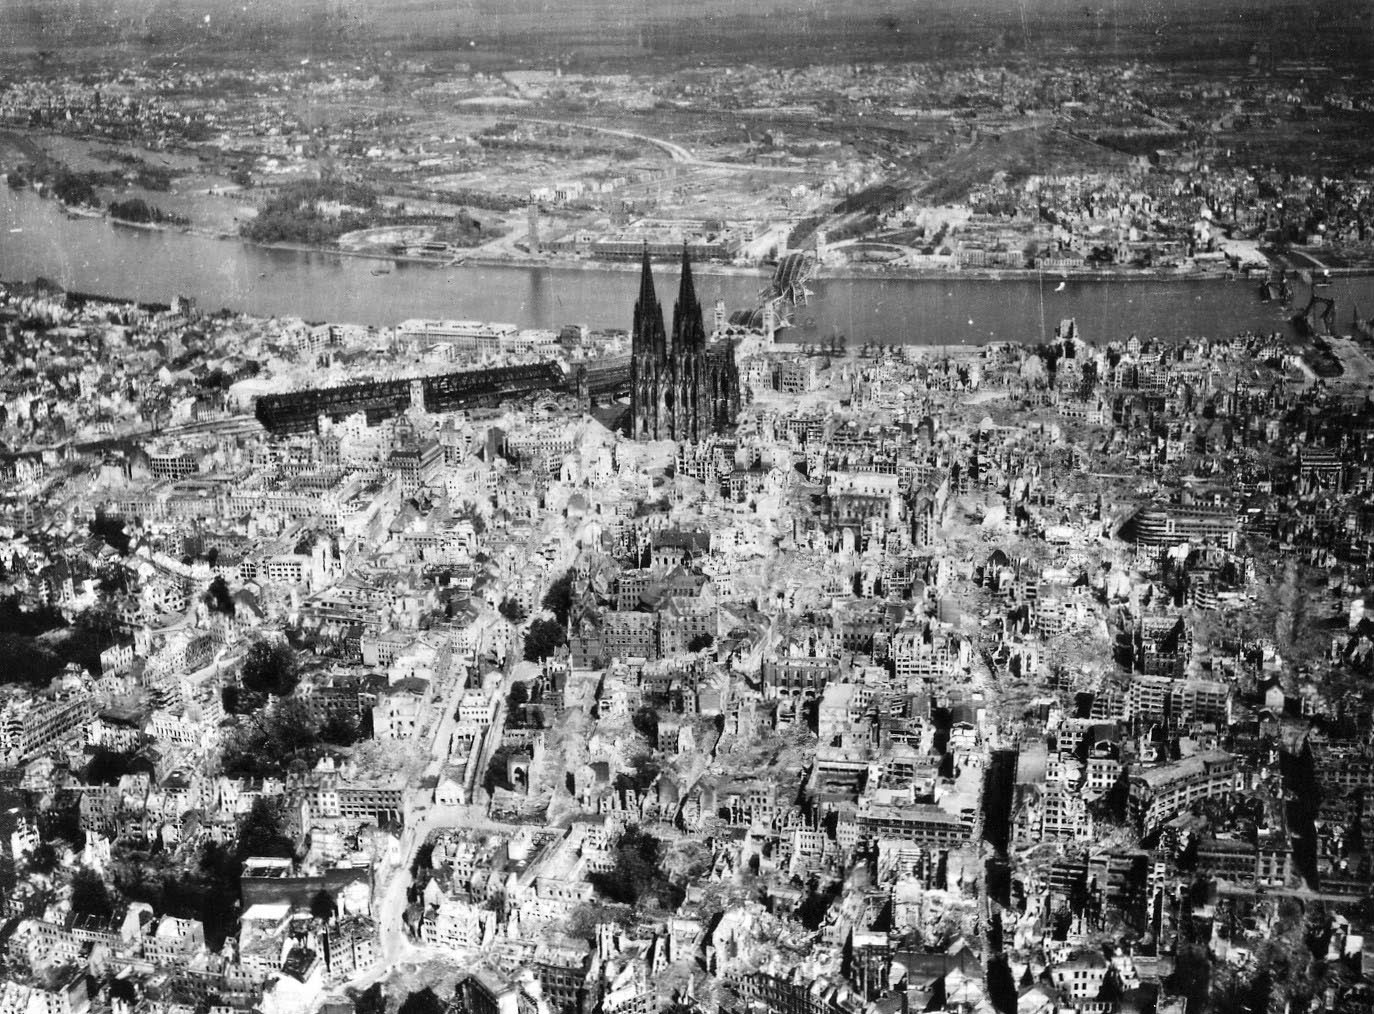 the cologne cathedral stands tall amidst the ruins of the